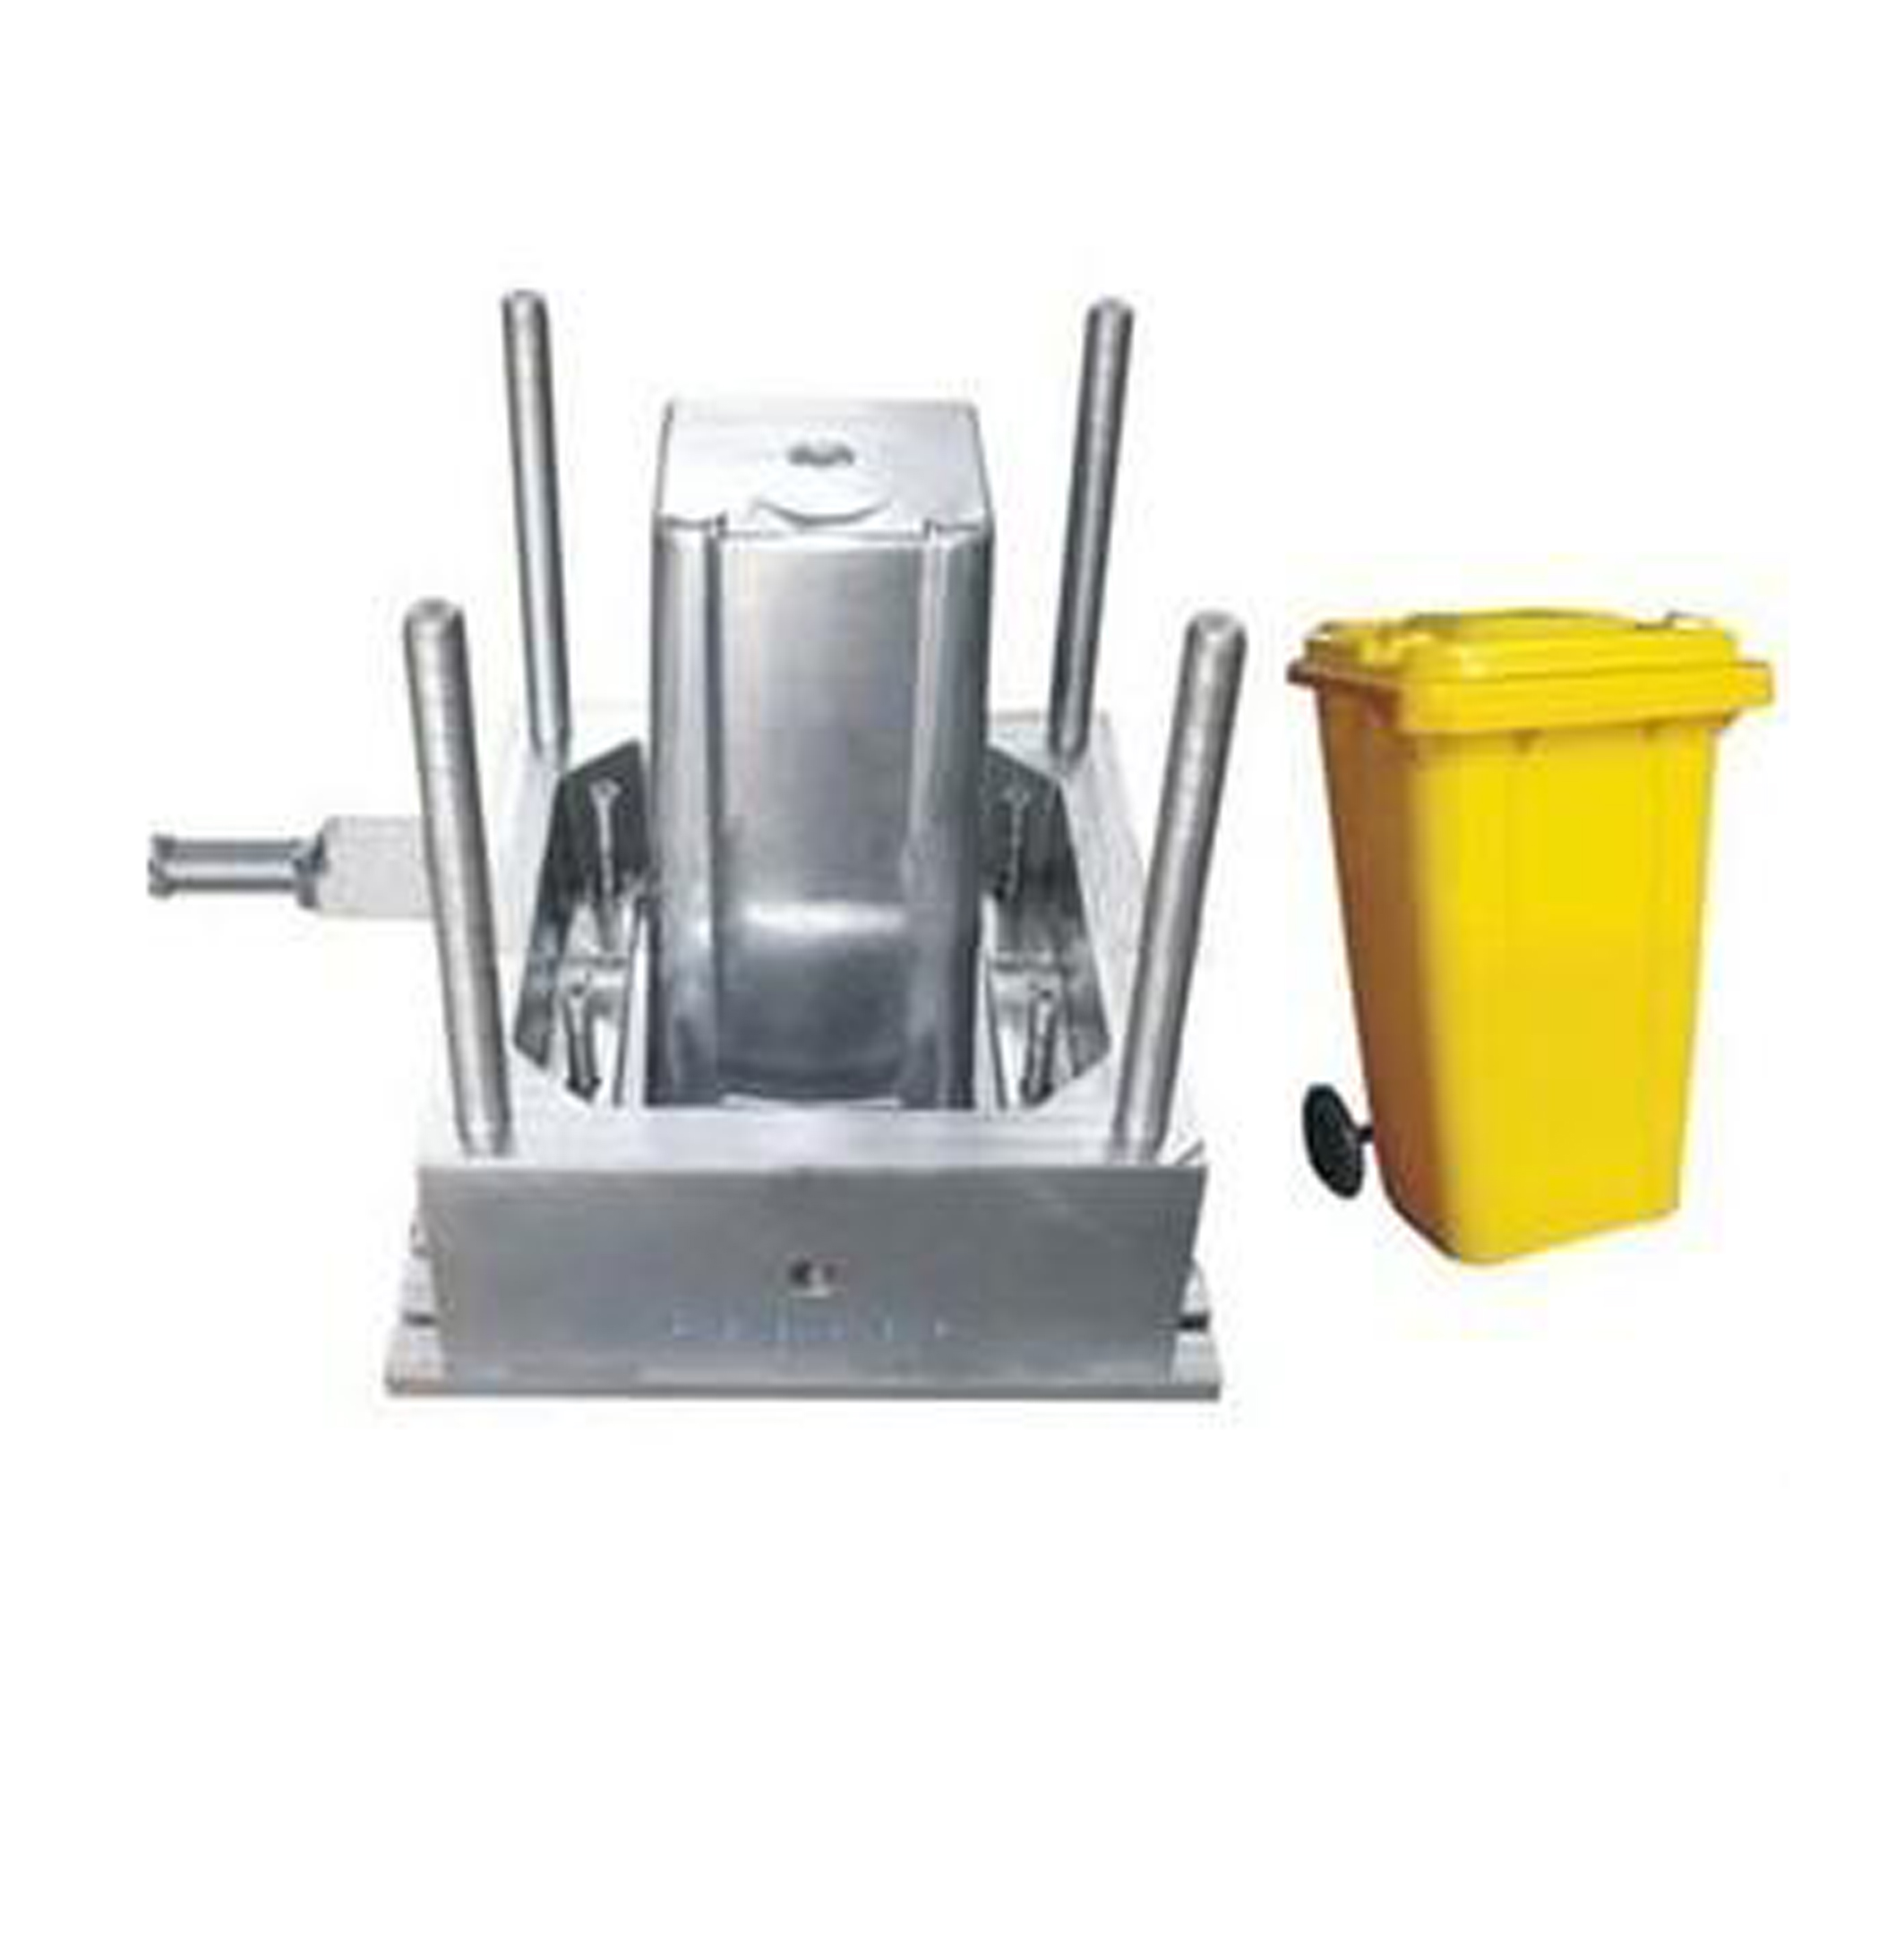 hot sell high quality trash can mold plastic <strong>injection</strong>, plastic pp hdpe big Trash bin box mould